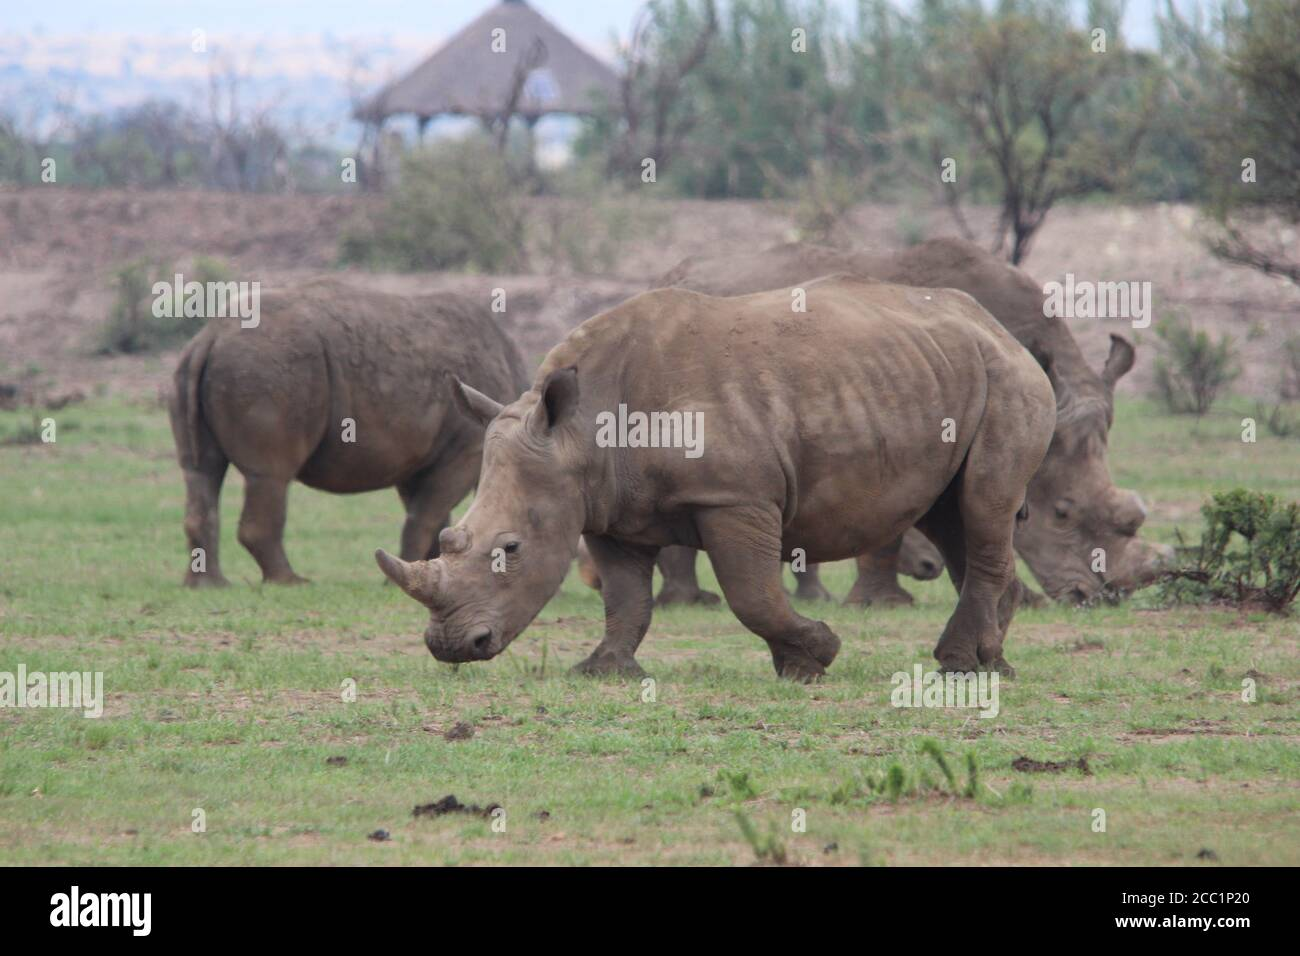 South Africa. 08th Feb, 2019. White rhinos go to the private rhino rearing facility of J. Hume in South Africa's North West Province. There are currently more than 1700 white rhinos on the farm. Credit: Jürgen Bätz/dpa/Alamy Live News Stock Photo